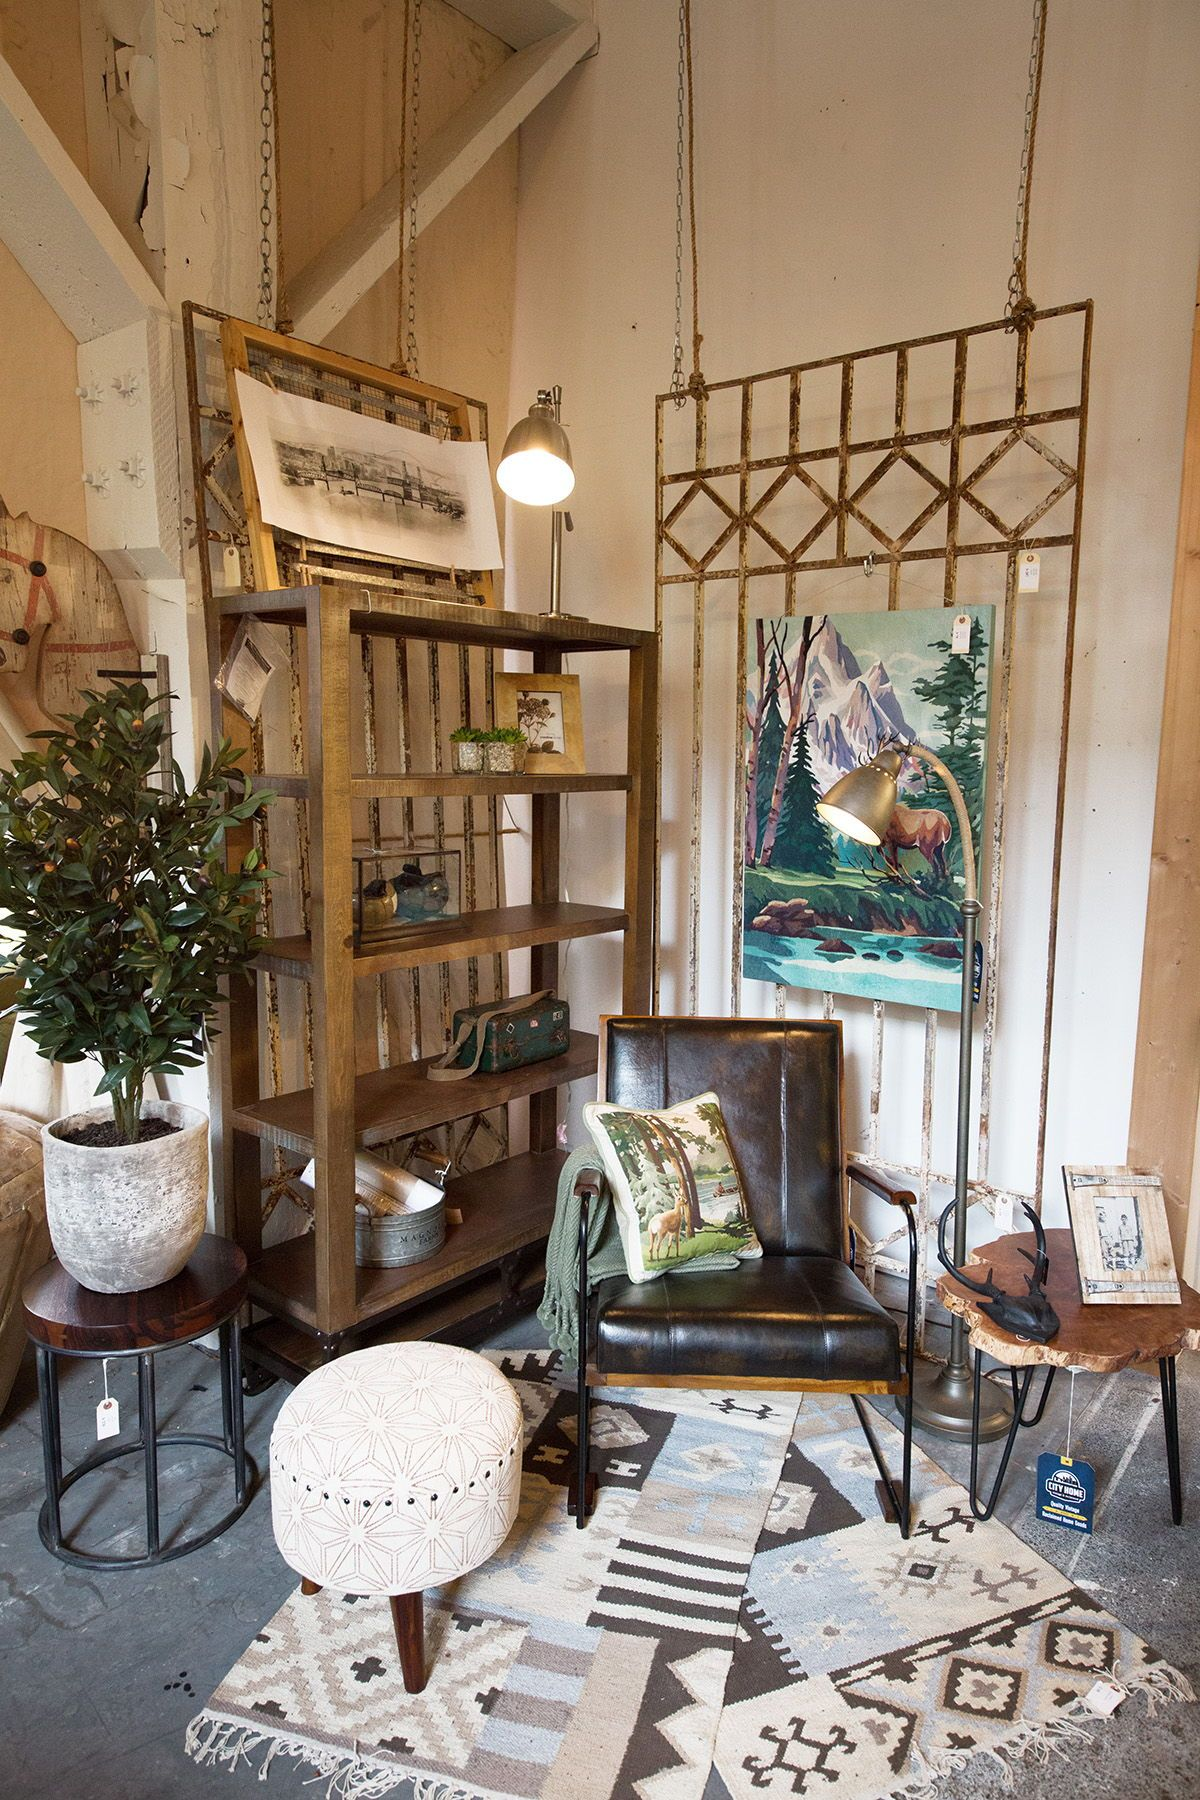 Pacific Northwest Home Decor And Furniture Vibes At City Home In Portland Oregon Home Decor Affordable Living Room Furniture Home Furniture